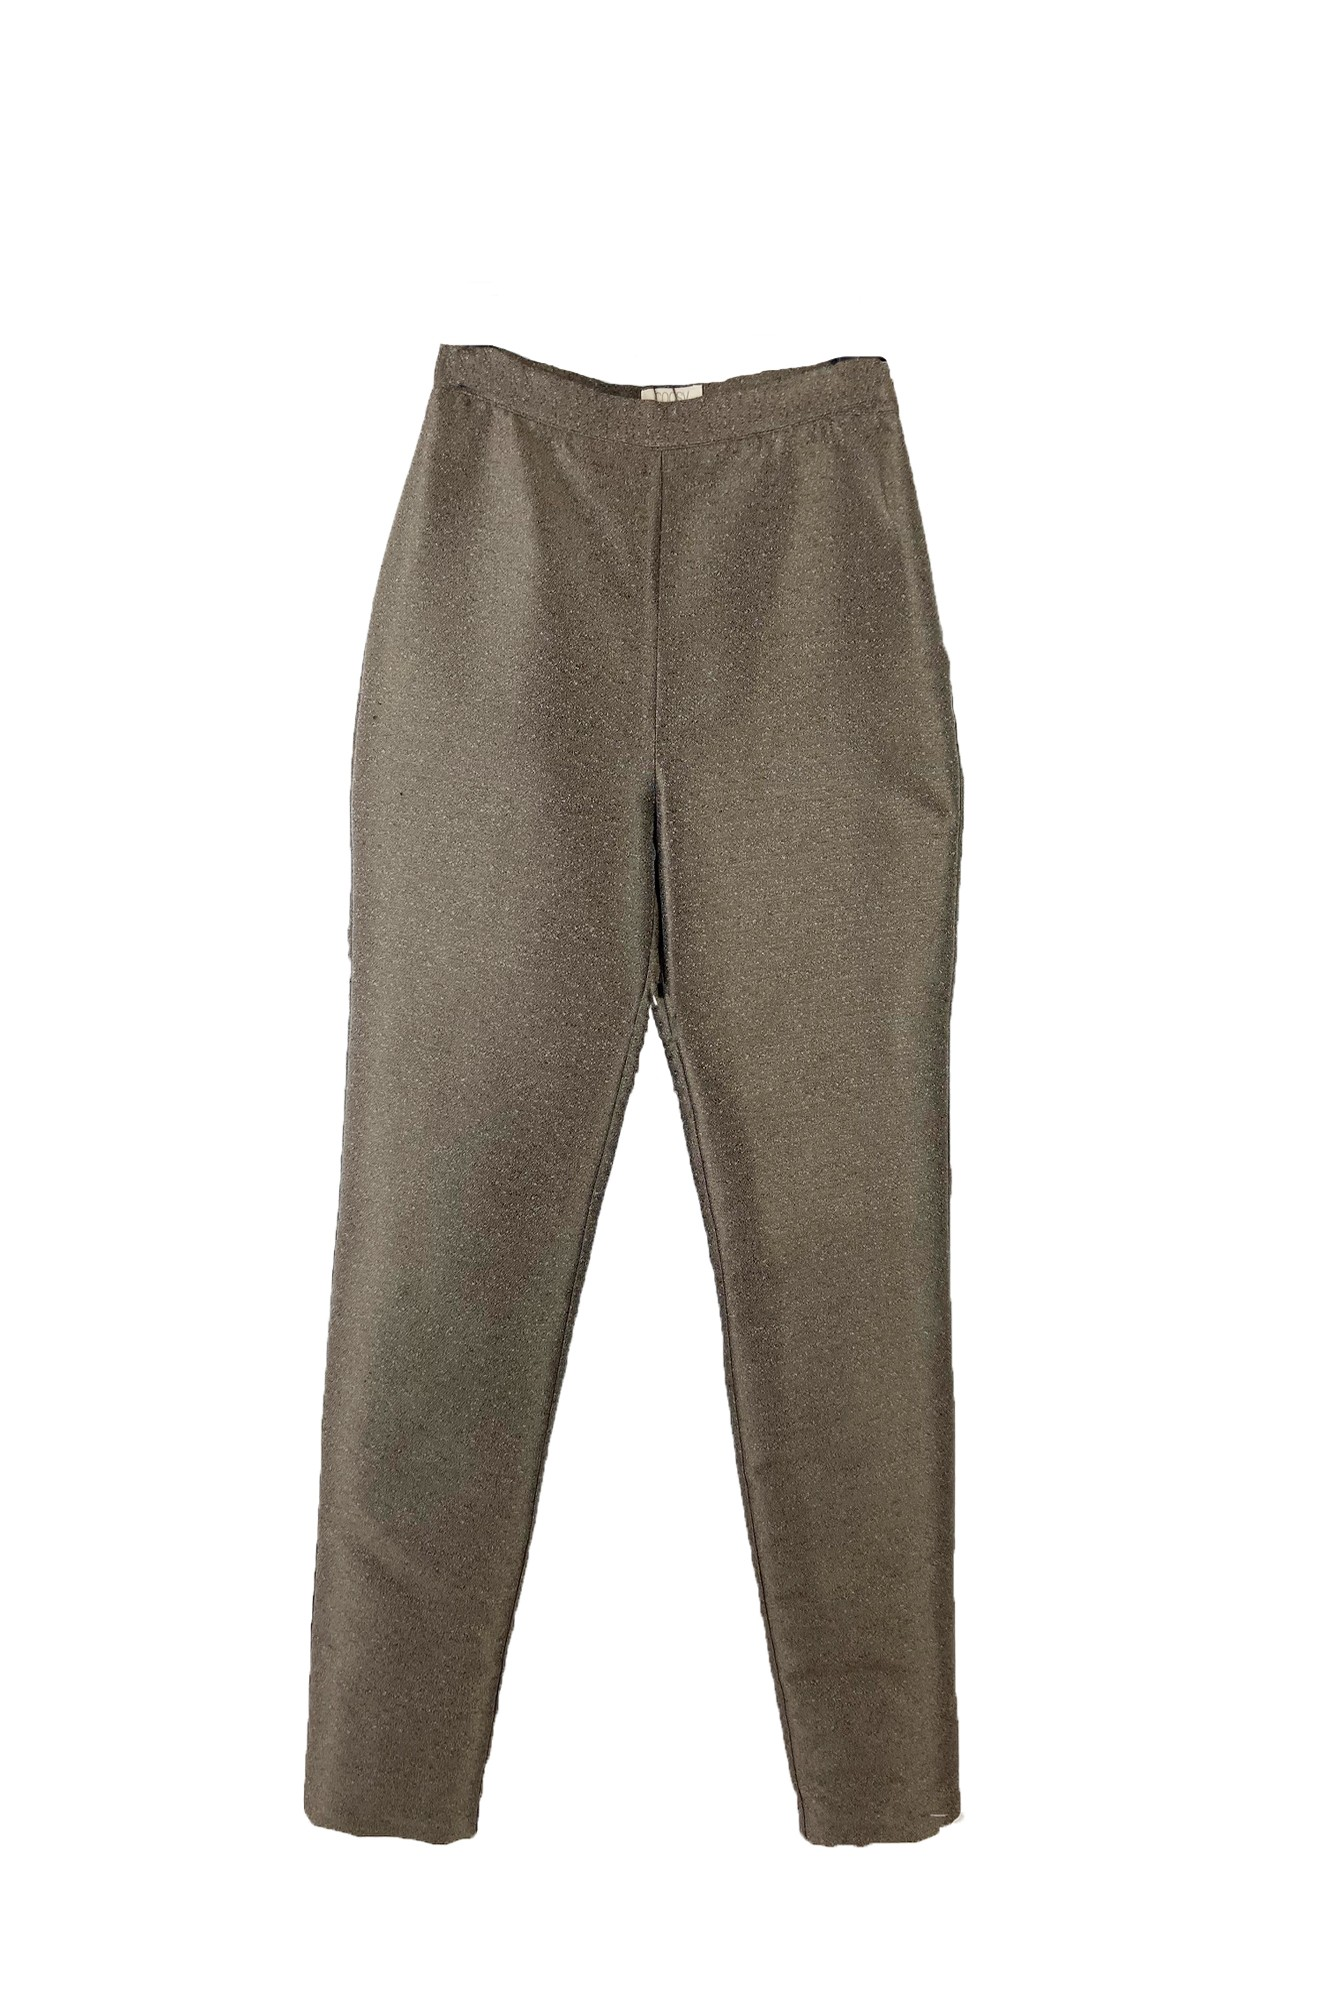 FRANCIS BROWN TROUSERS